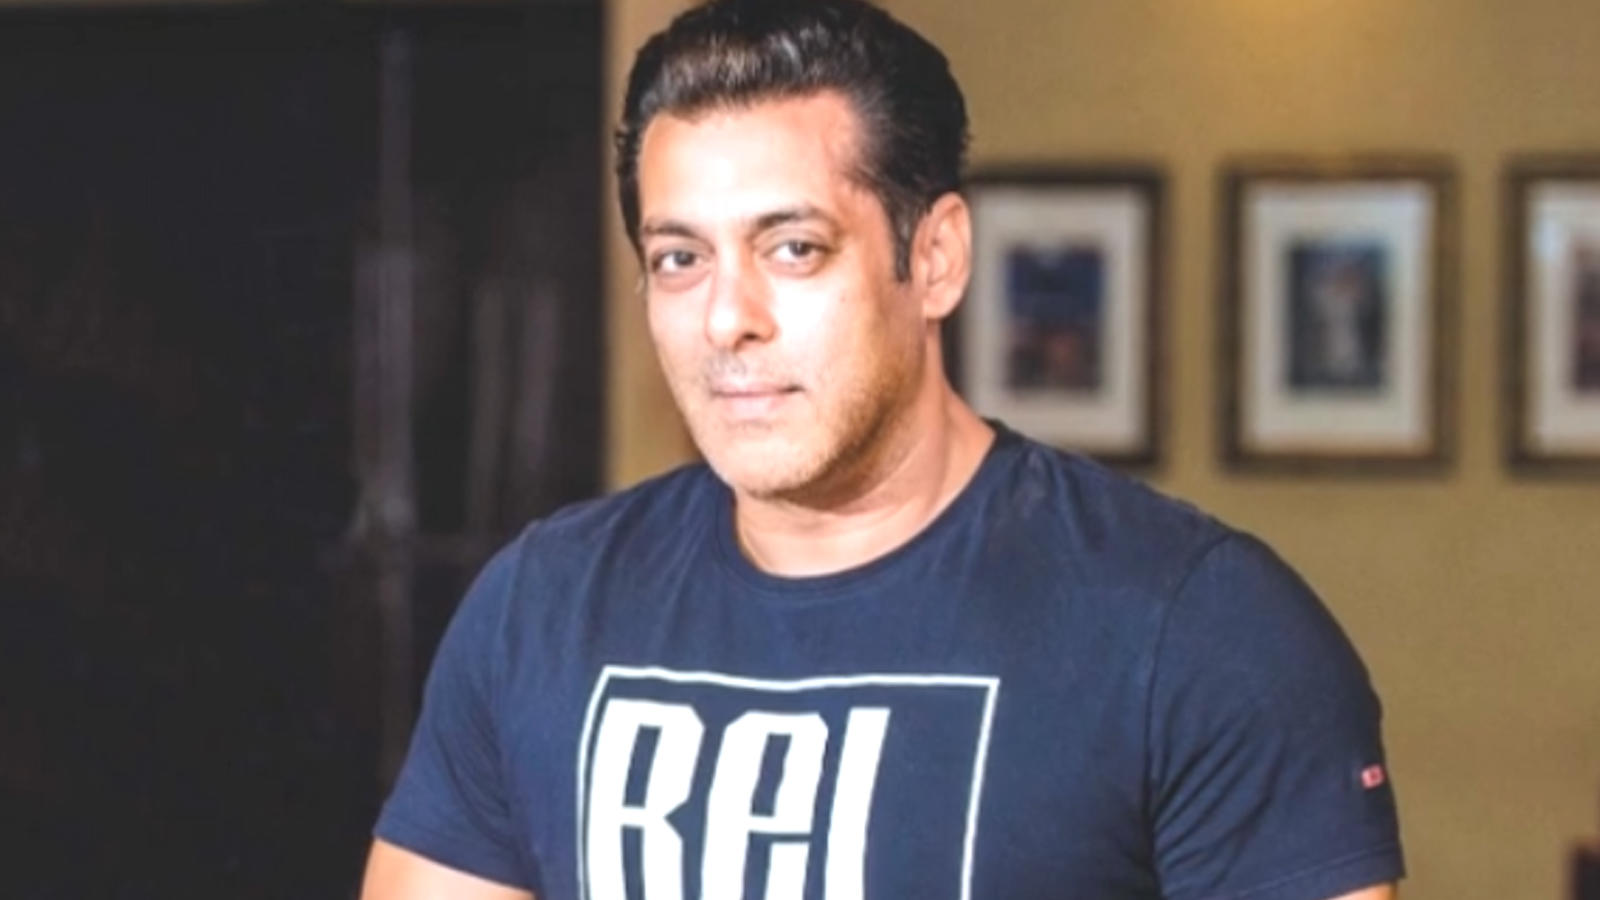 Salman Khan opens up on equation with Priyanka Chopra and more